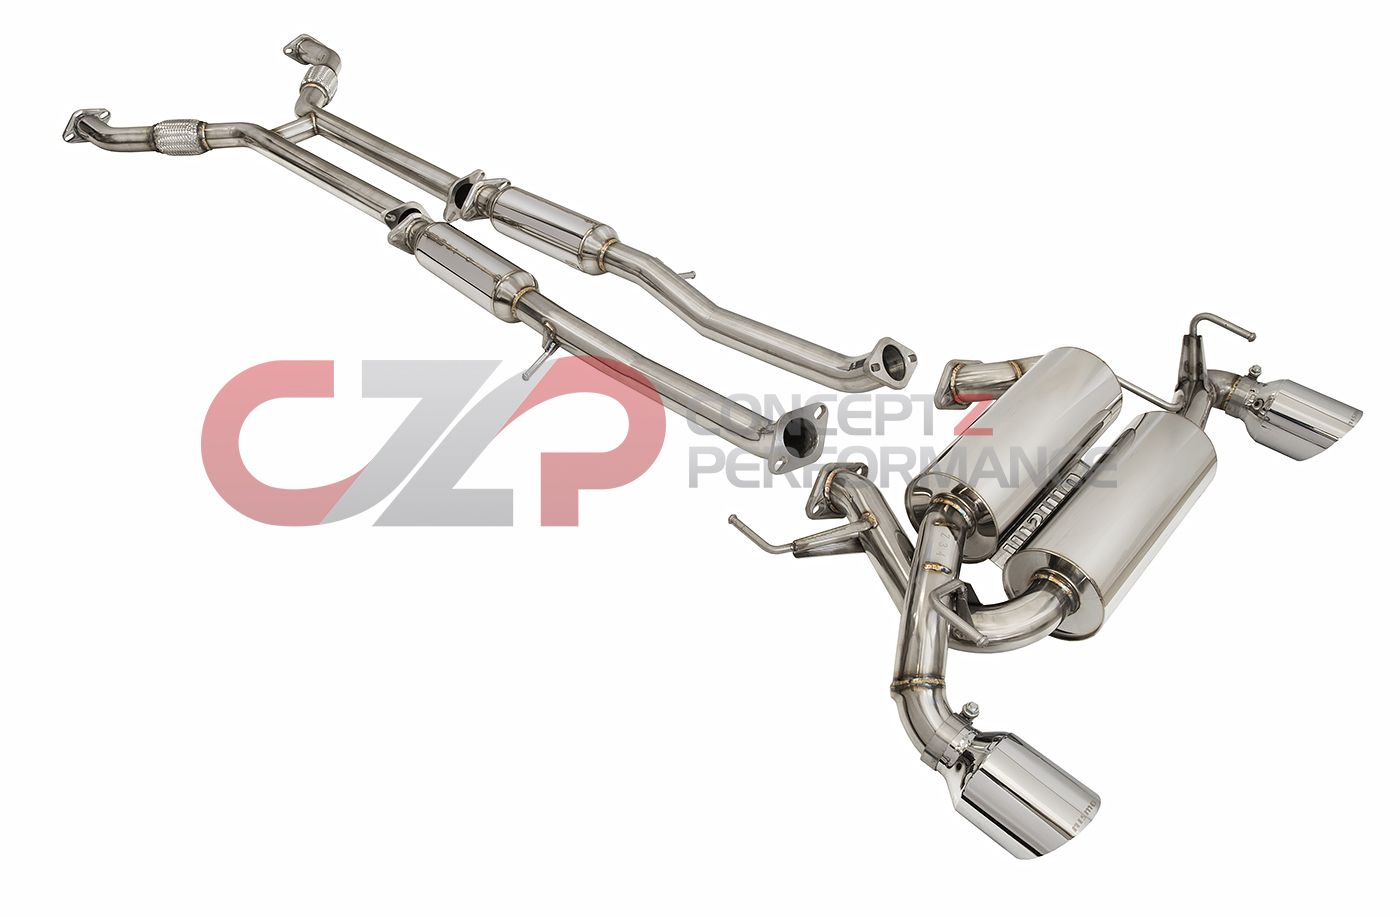 Nismo R-Tune Sport Cat-Back Exhaust System - Nissan 370Z 09+ Z34